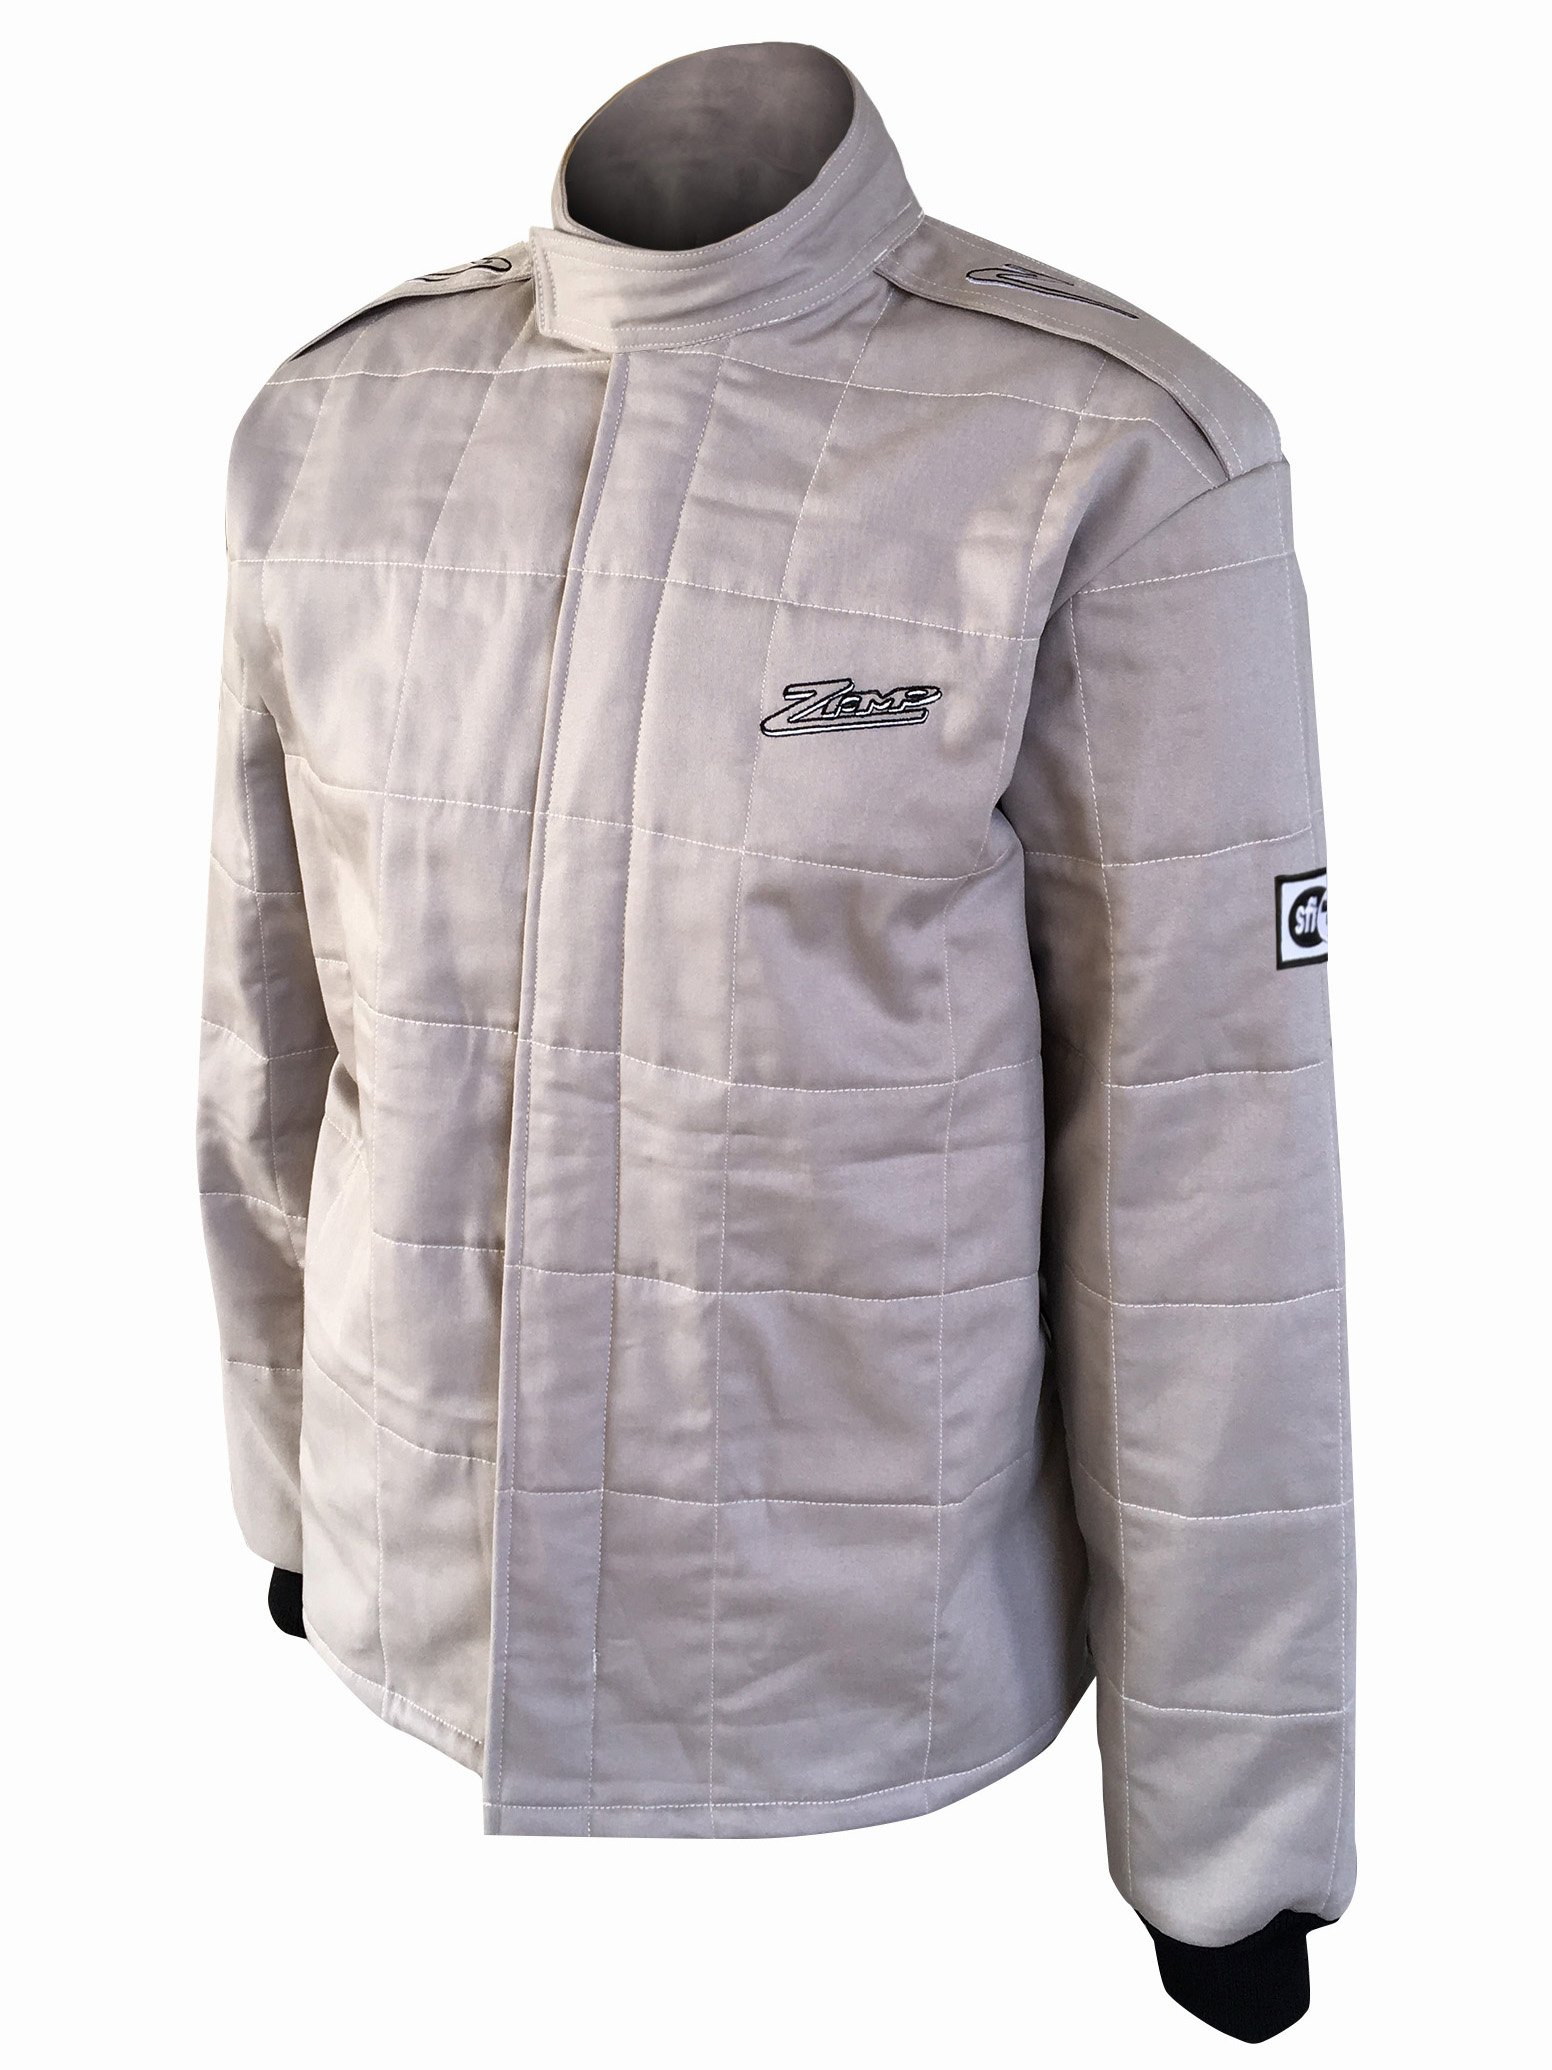 Zamp ZR-30 SFI 3.2A/5 Race Jacket Grey Large